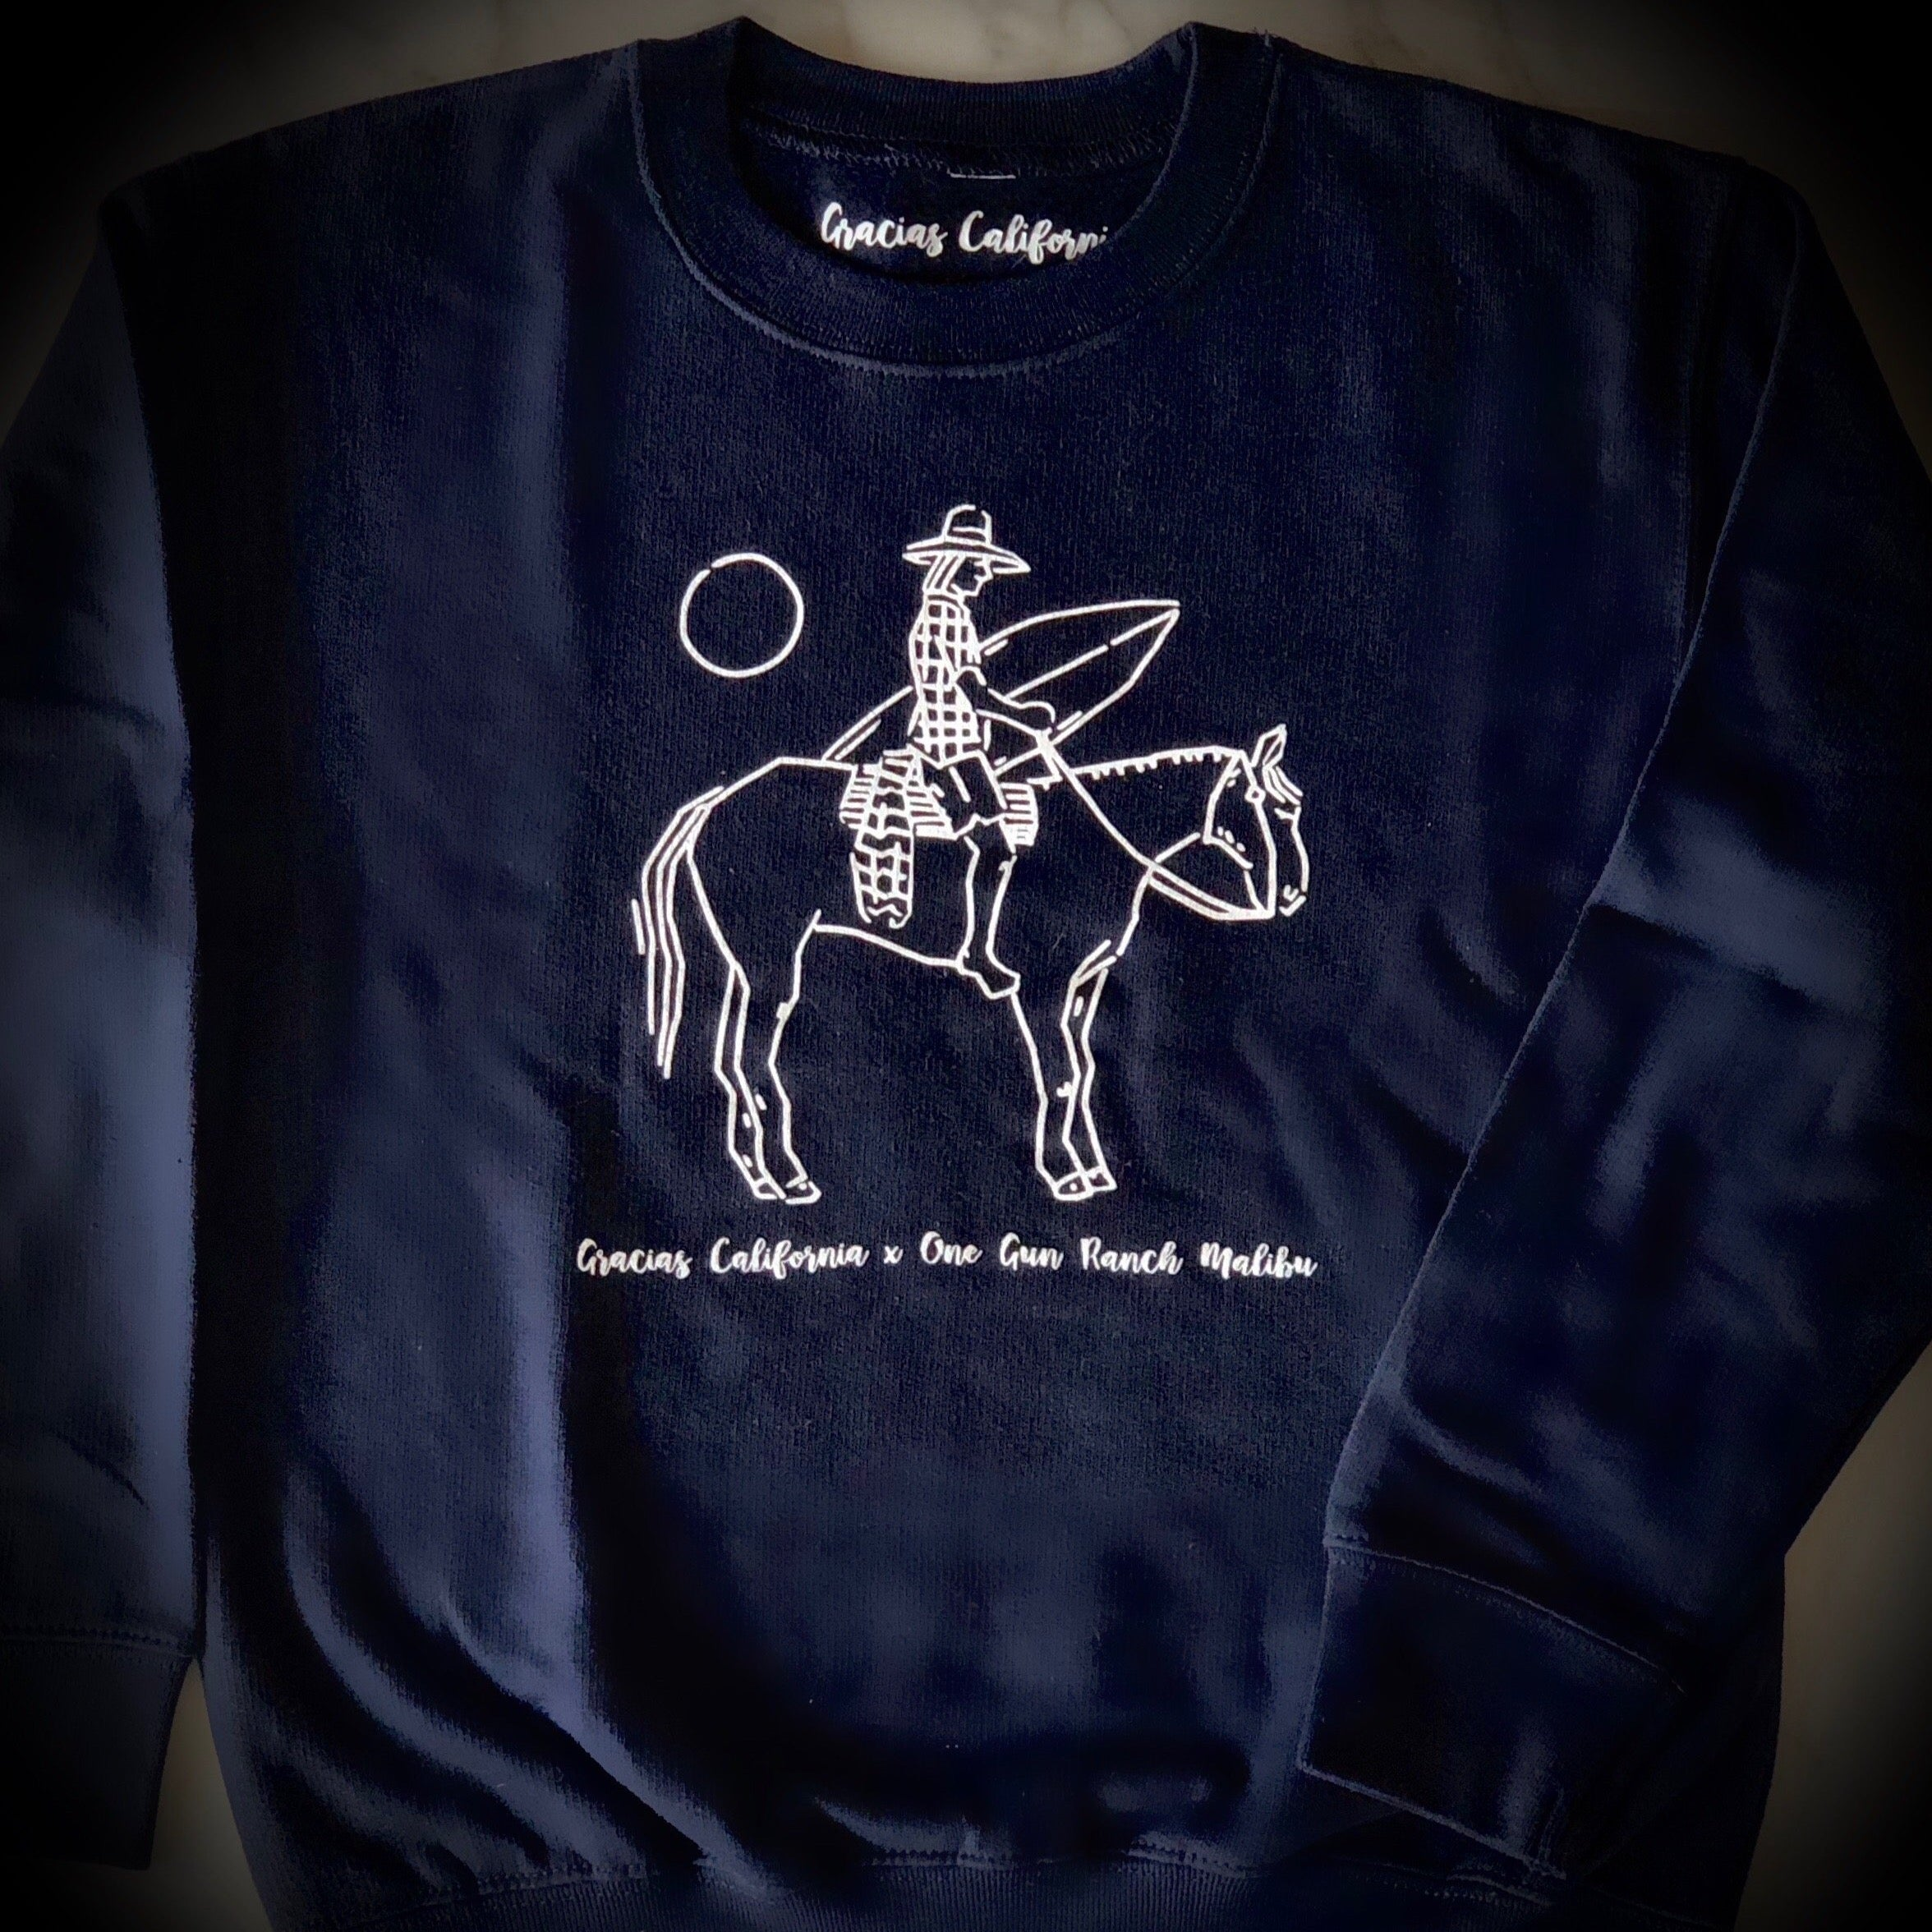 navy blue sweatshirt with a white outline design of a woman riding a horse and carrying a surfboard.